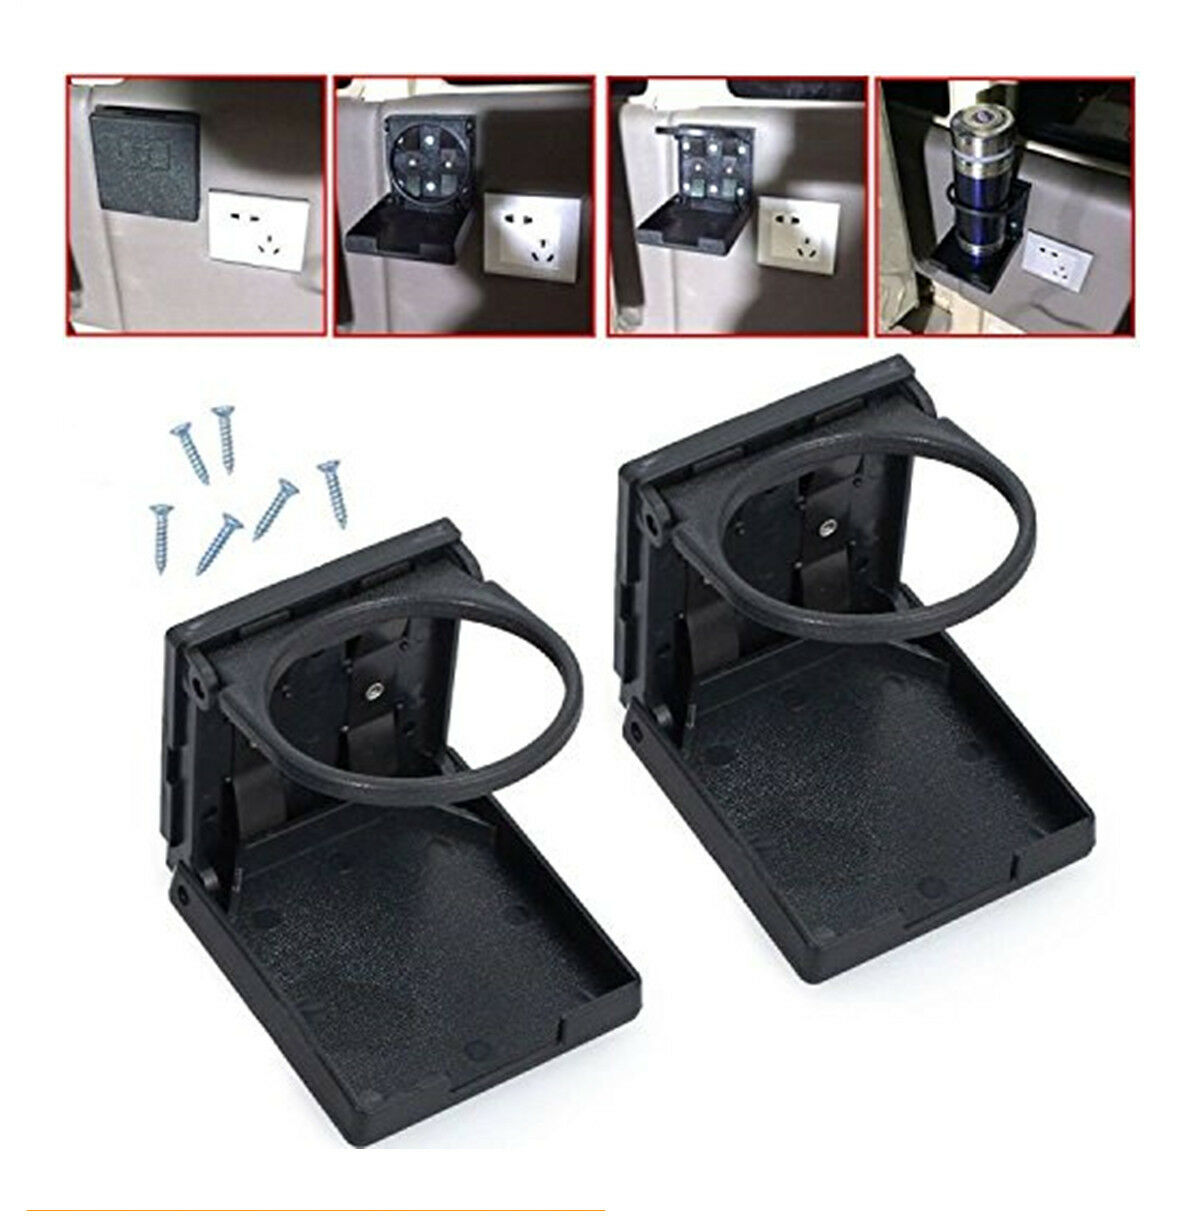 2pcs Boat Cup Holder Black Folding Car Cup Drink Holders with Screws and Double-sided Tapes for Car//Truck//RVs//Yacht//Caravan//Home Office